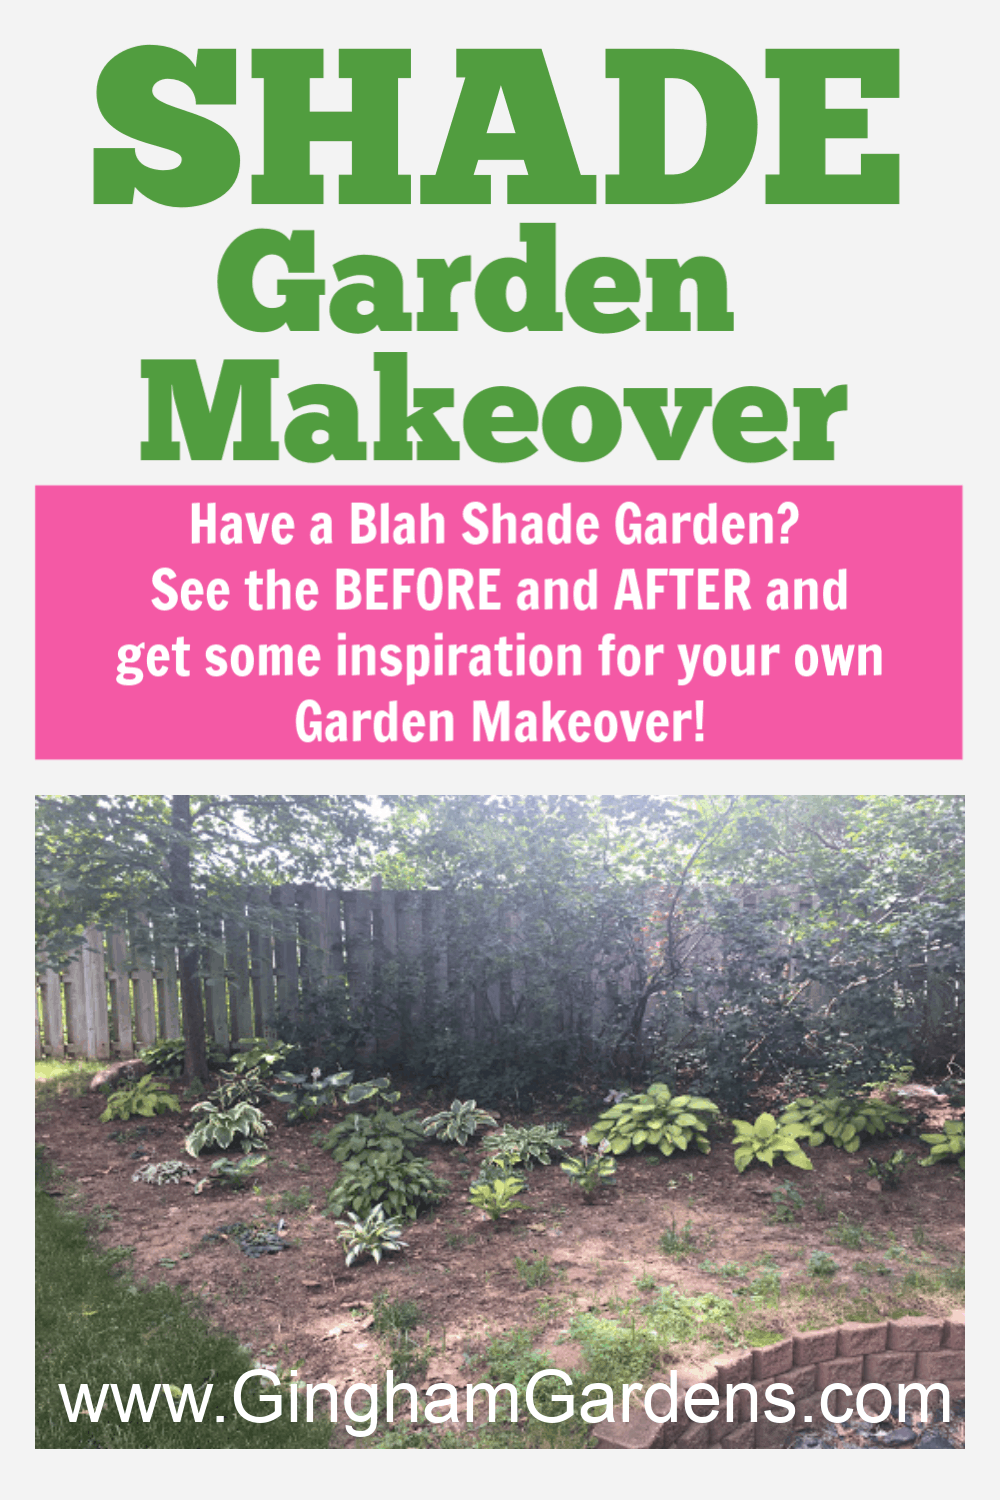 Image of Shade Garden Makeover with text overlay - Shade Garden Makeover